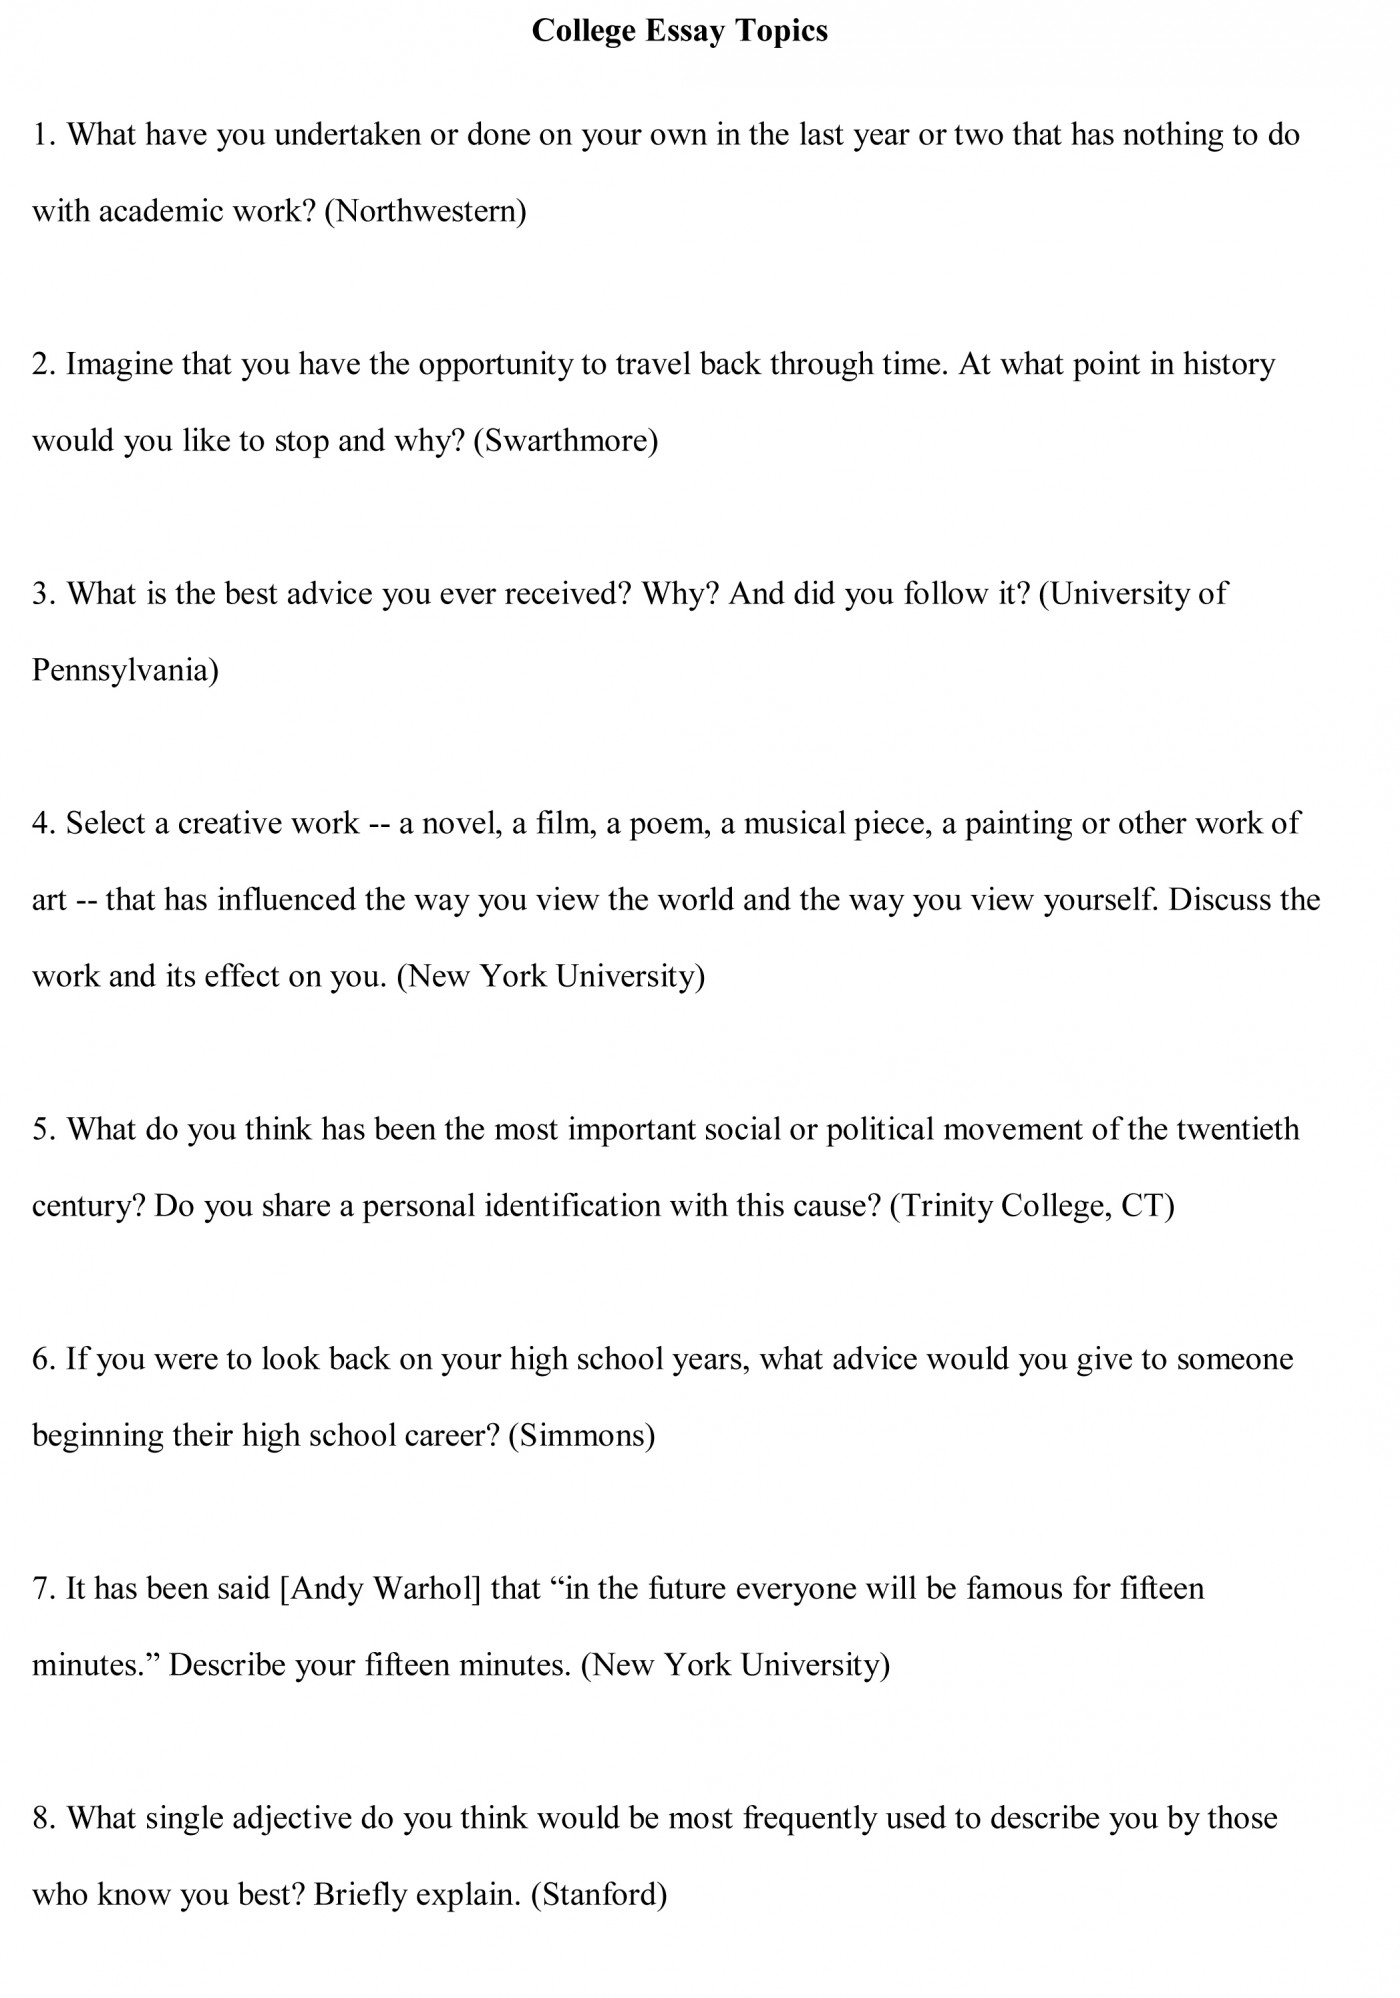 003 College Essay Topics Free Sample1 Prompts Impressive And Examples Application Uc 2017 1400